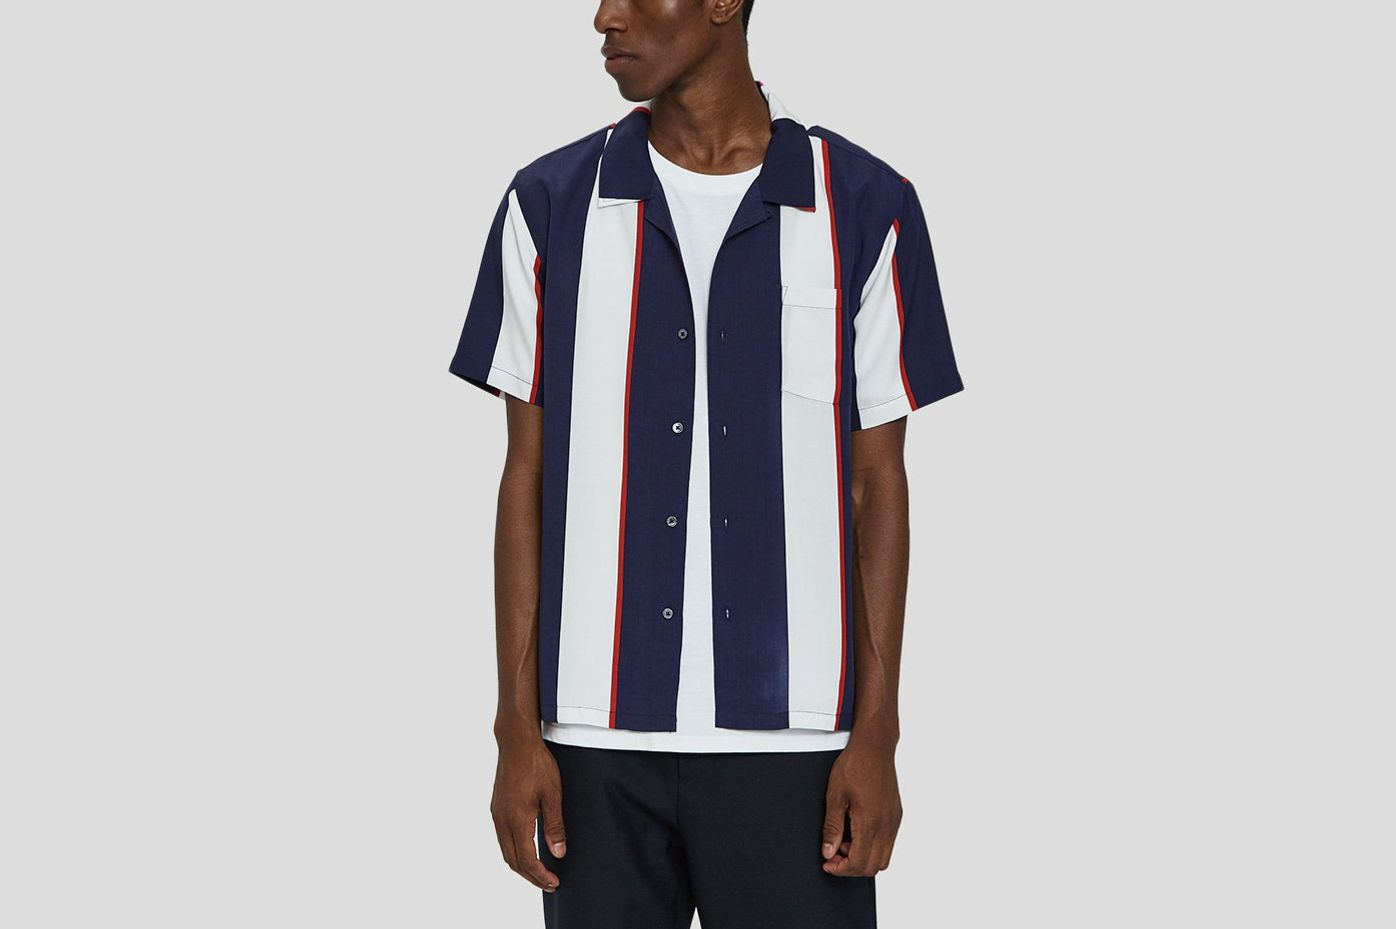 Stüssy Big Stripe Shirt in Navy